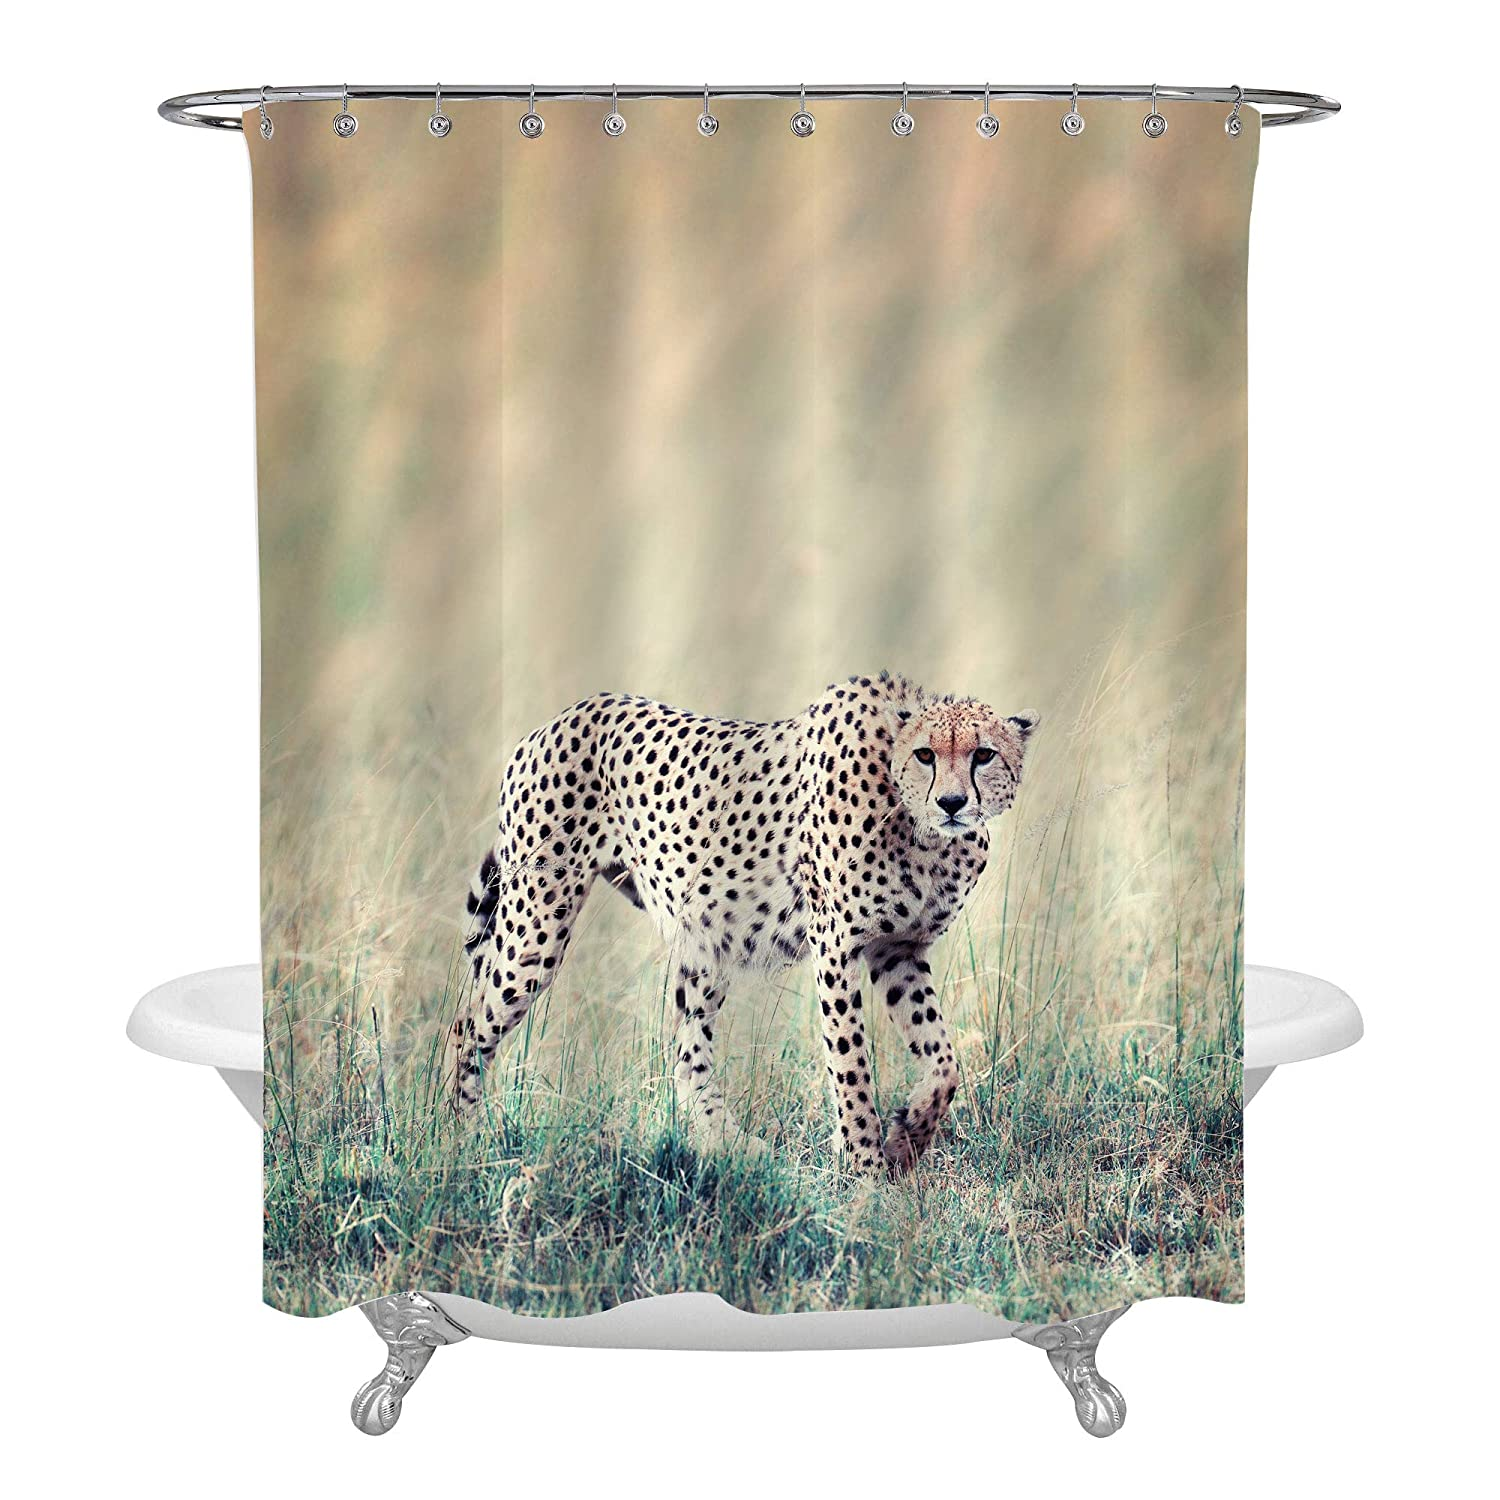 Wild African Cheetah Shower Curtain Liner Beautiful Mammal Animal Hunting In The Grassland Gifts For Men And Kids Boy Water Repellent Anti Bacterial